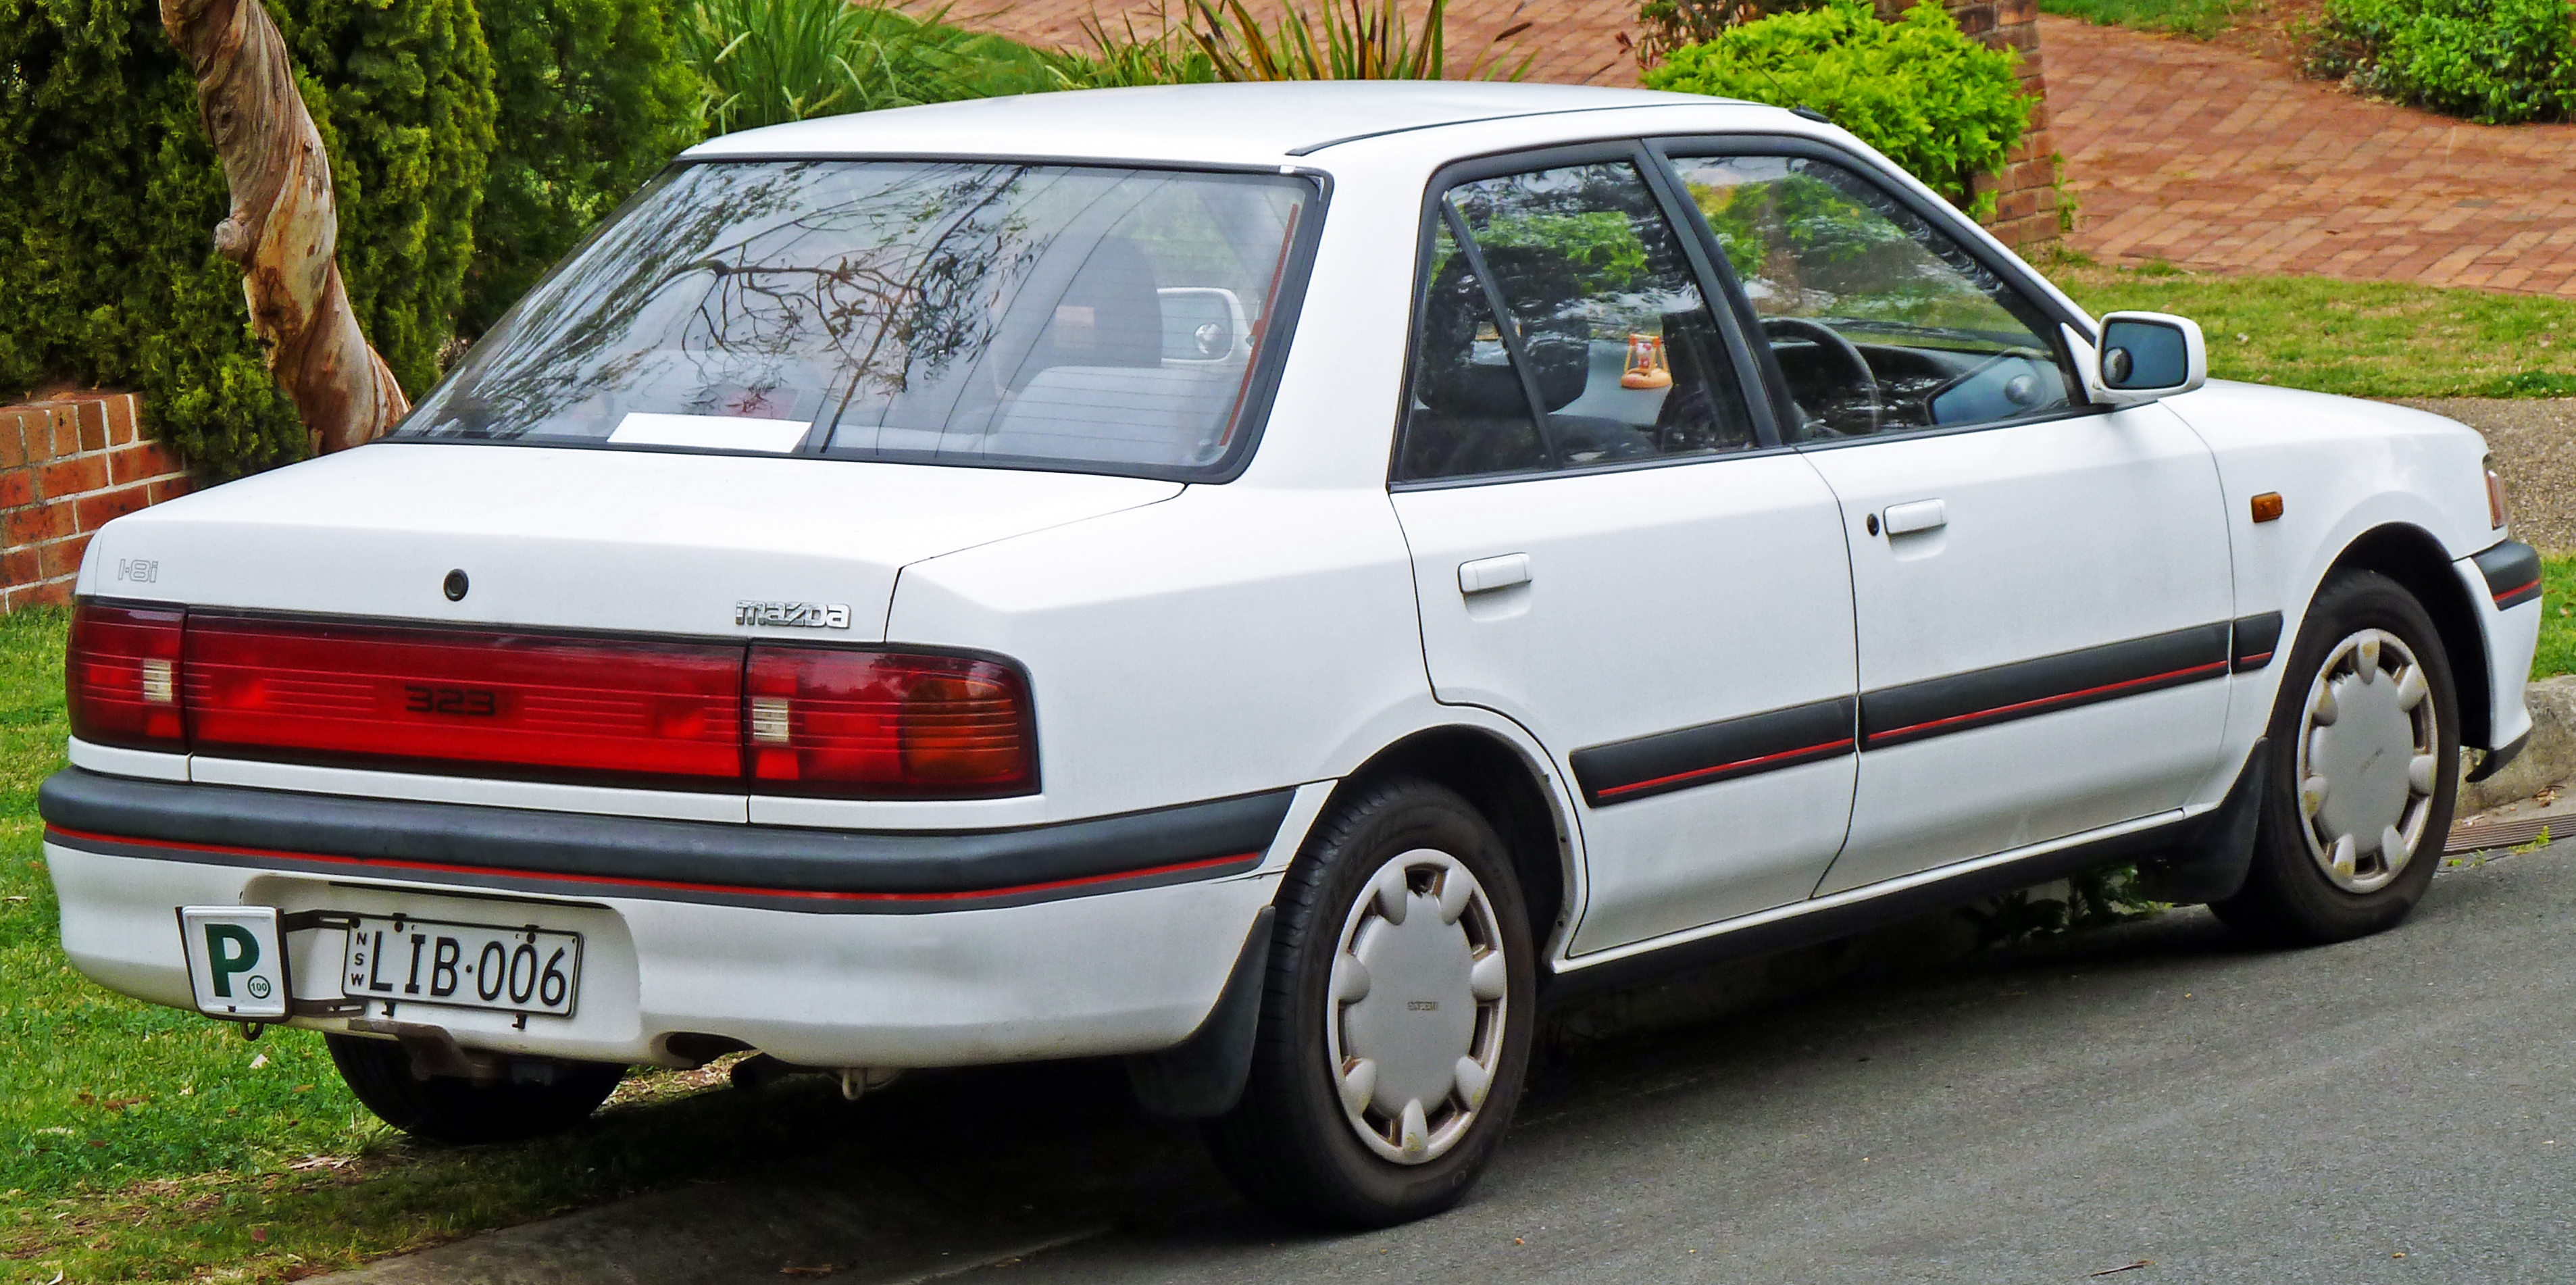 File:1991-1994 Mazda 323 (BG Series 2) sedan 01.jpg